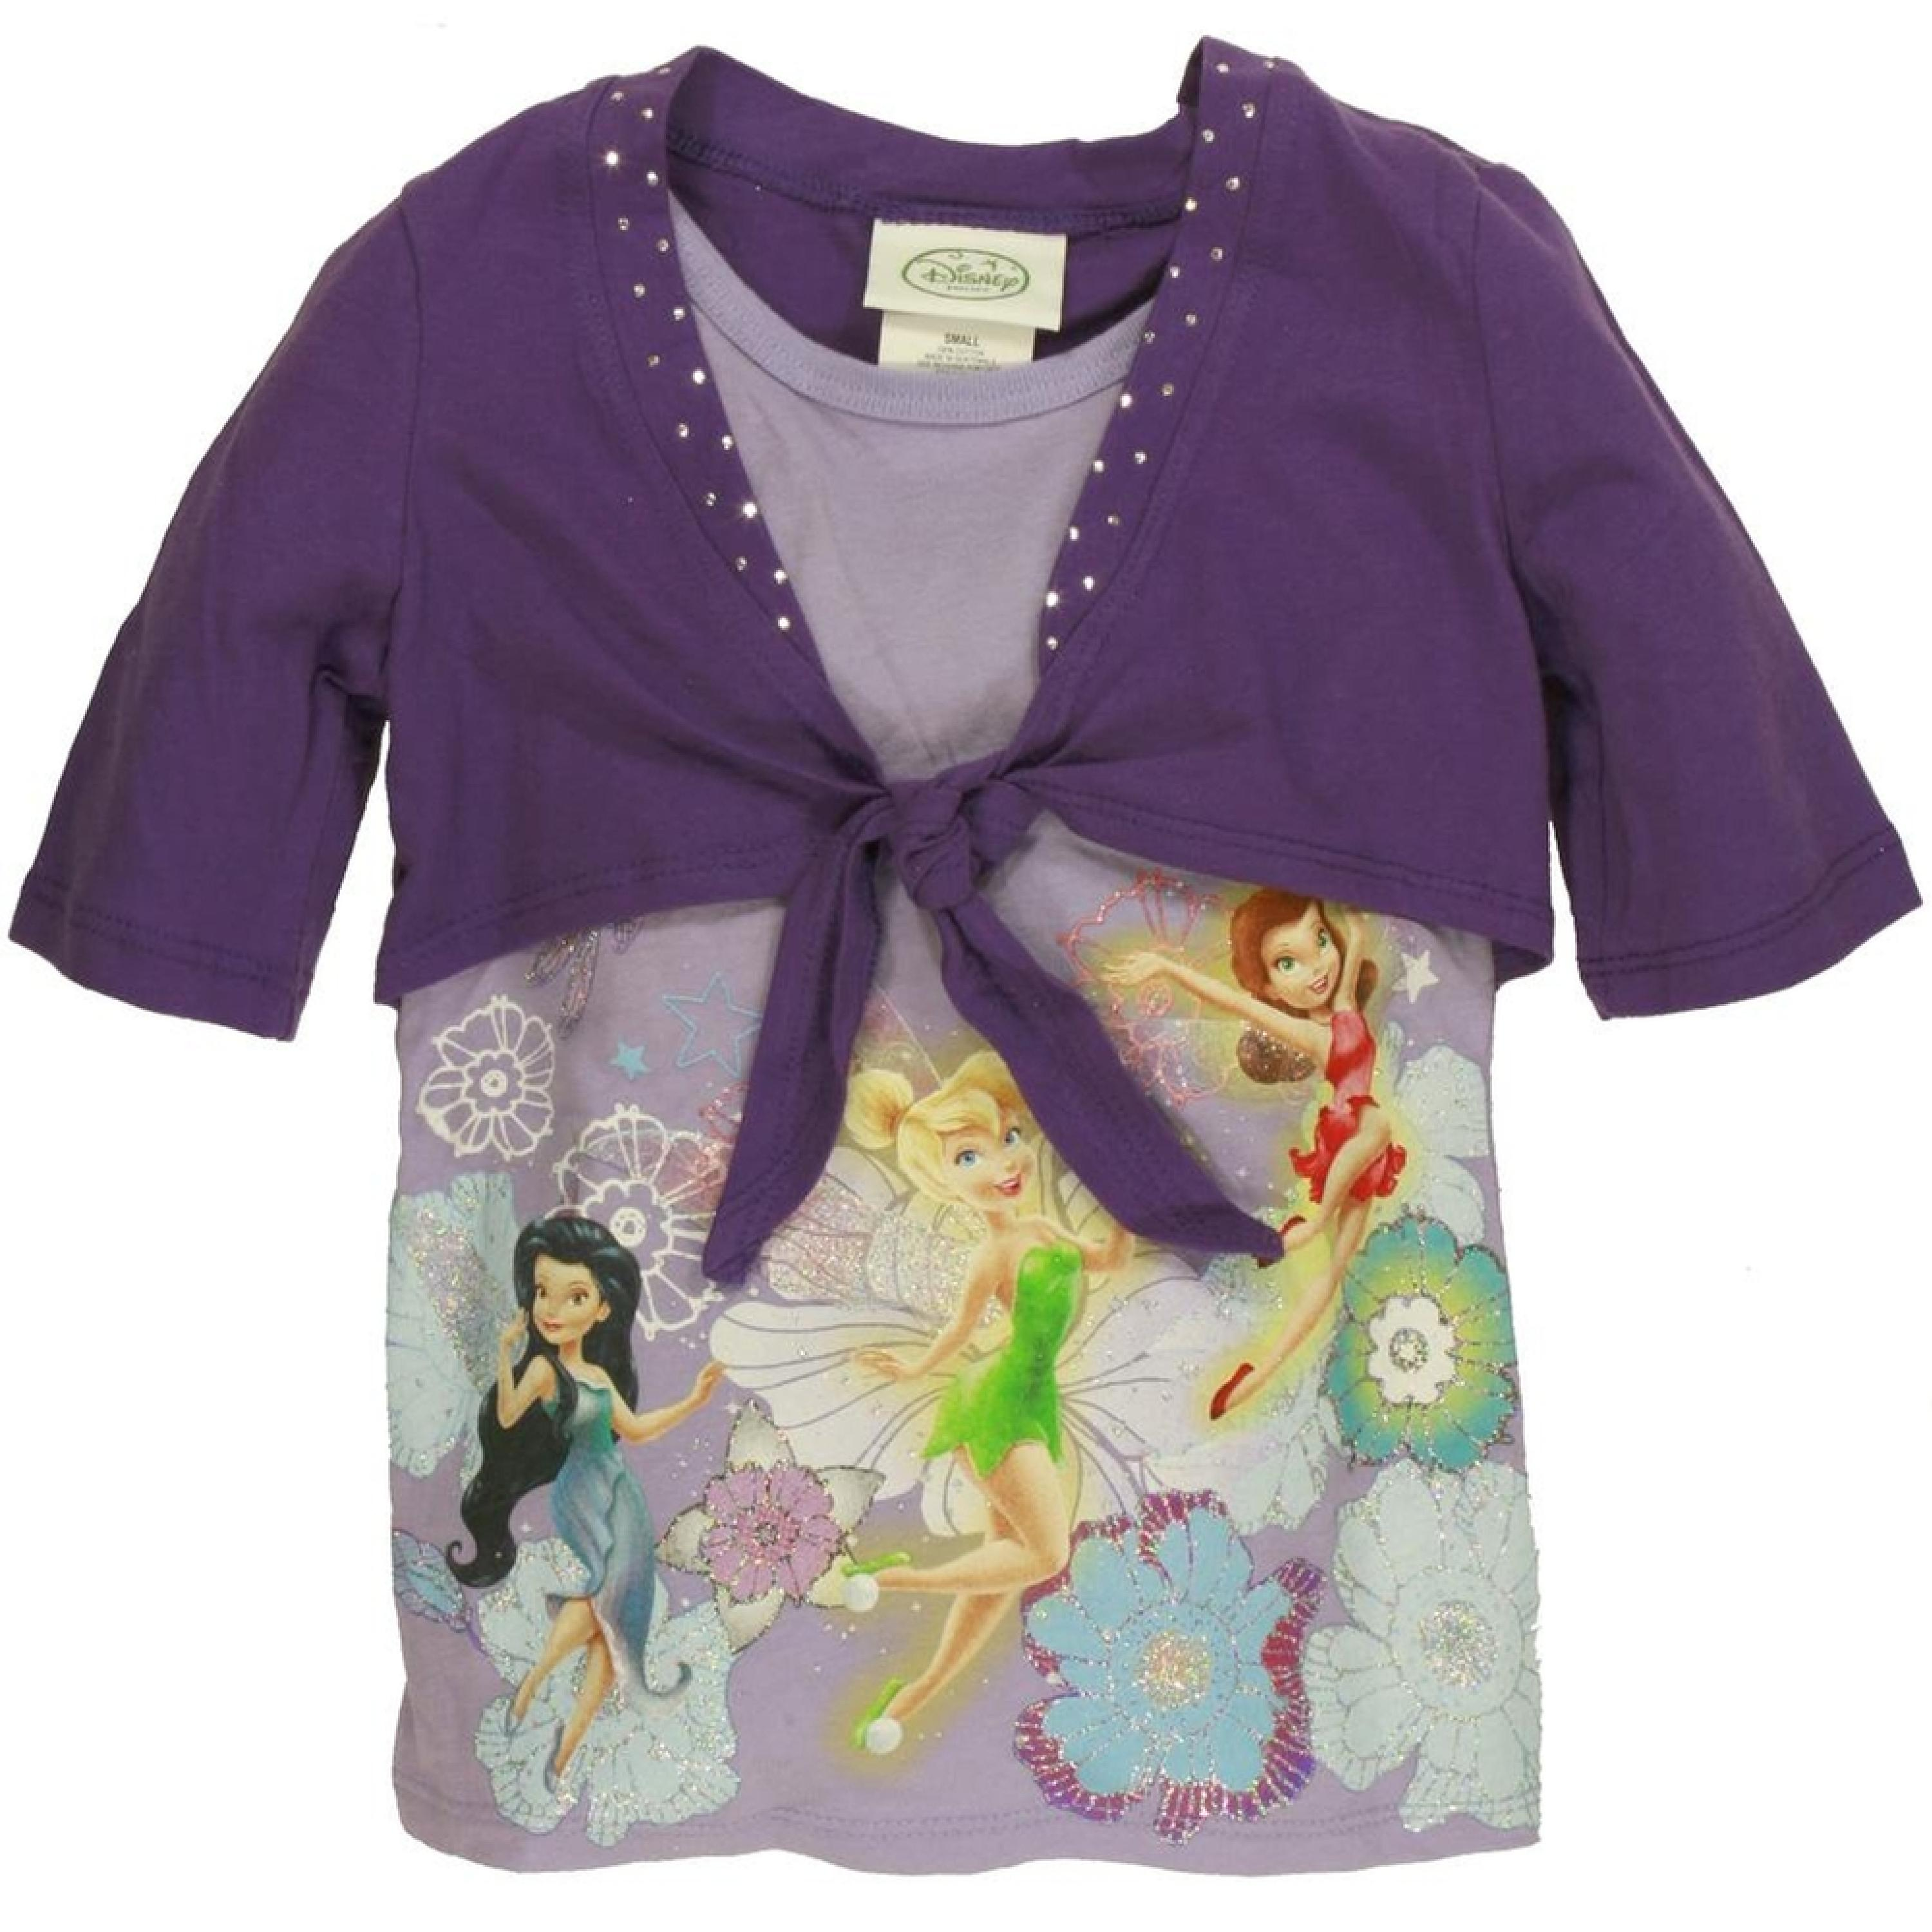 Disney Fairies - Fairy Fun Girls Juvy Shrug 2Fer